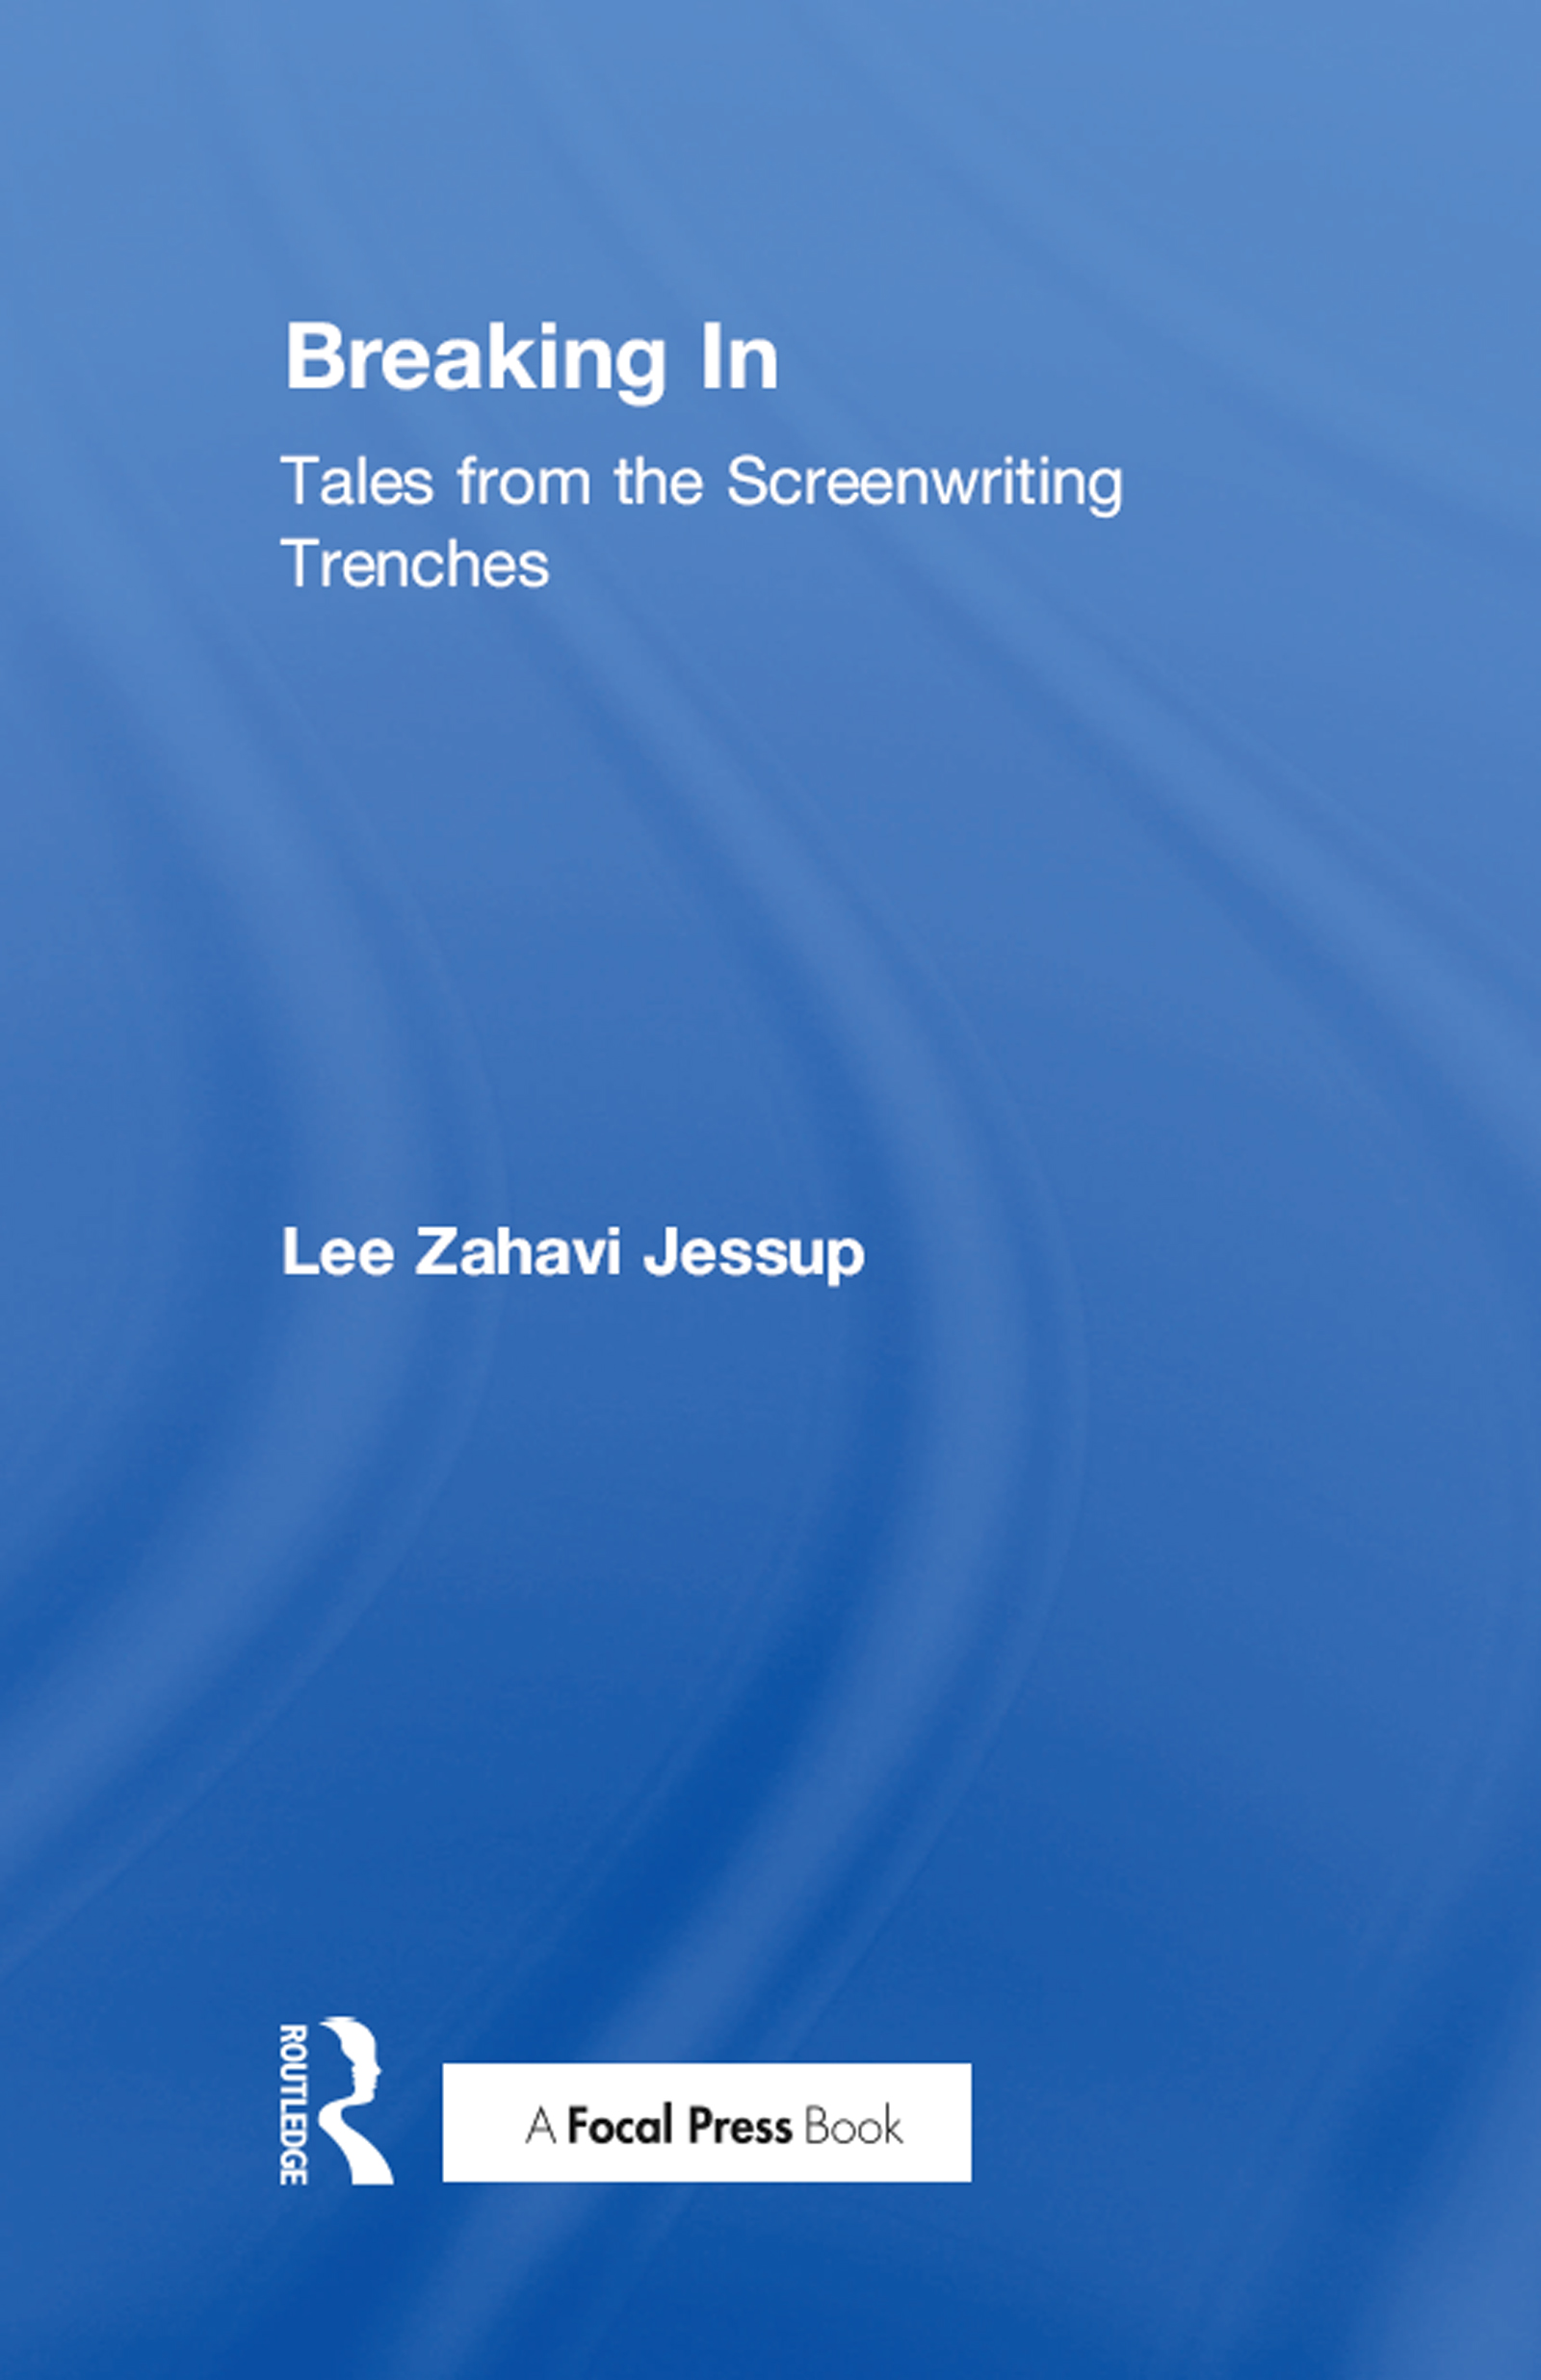 Breaking In: Tales from the Screenwriting Trenches book cover